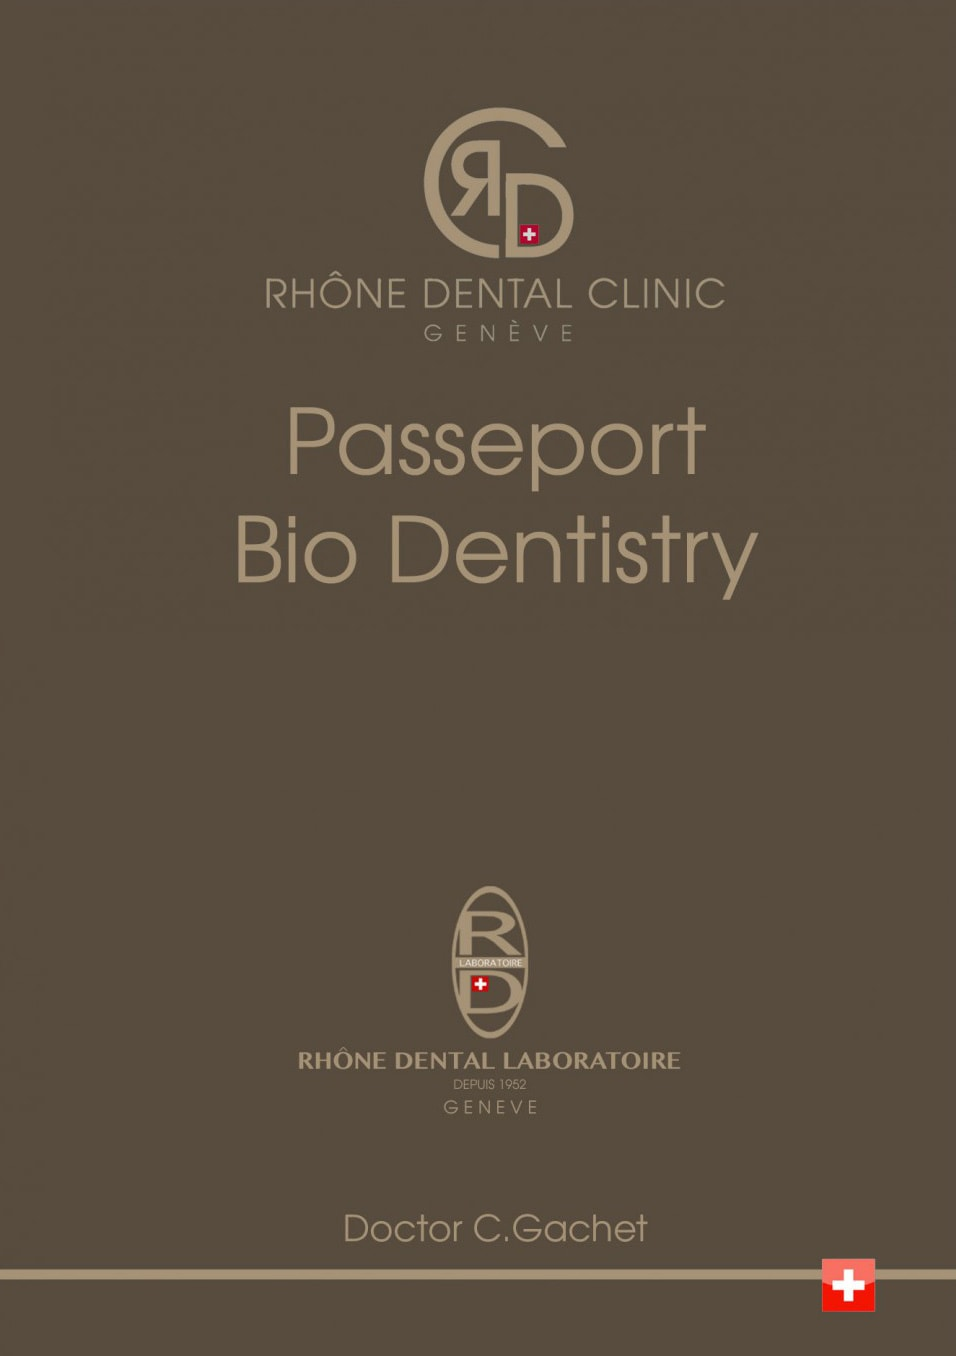 Follow-up and traceability proposed by a clinic specializing in dental aesthetics in Geneva